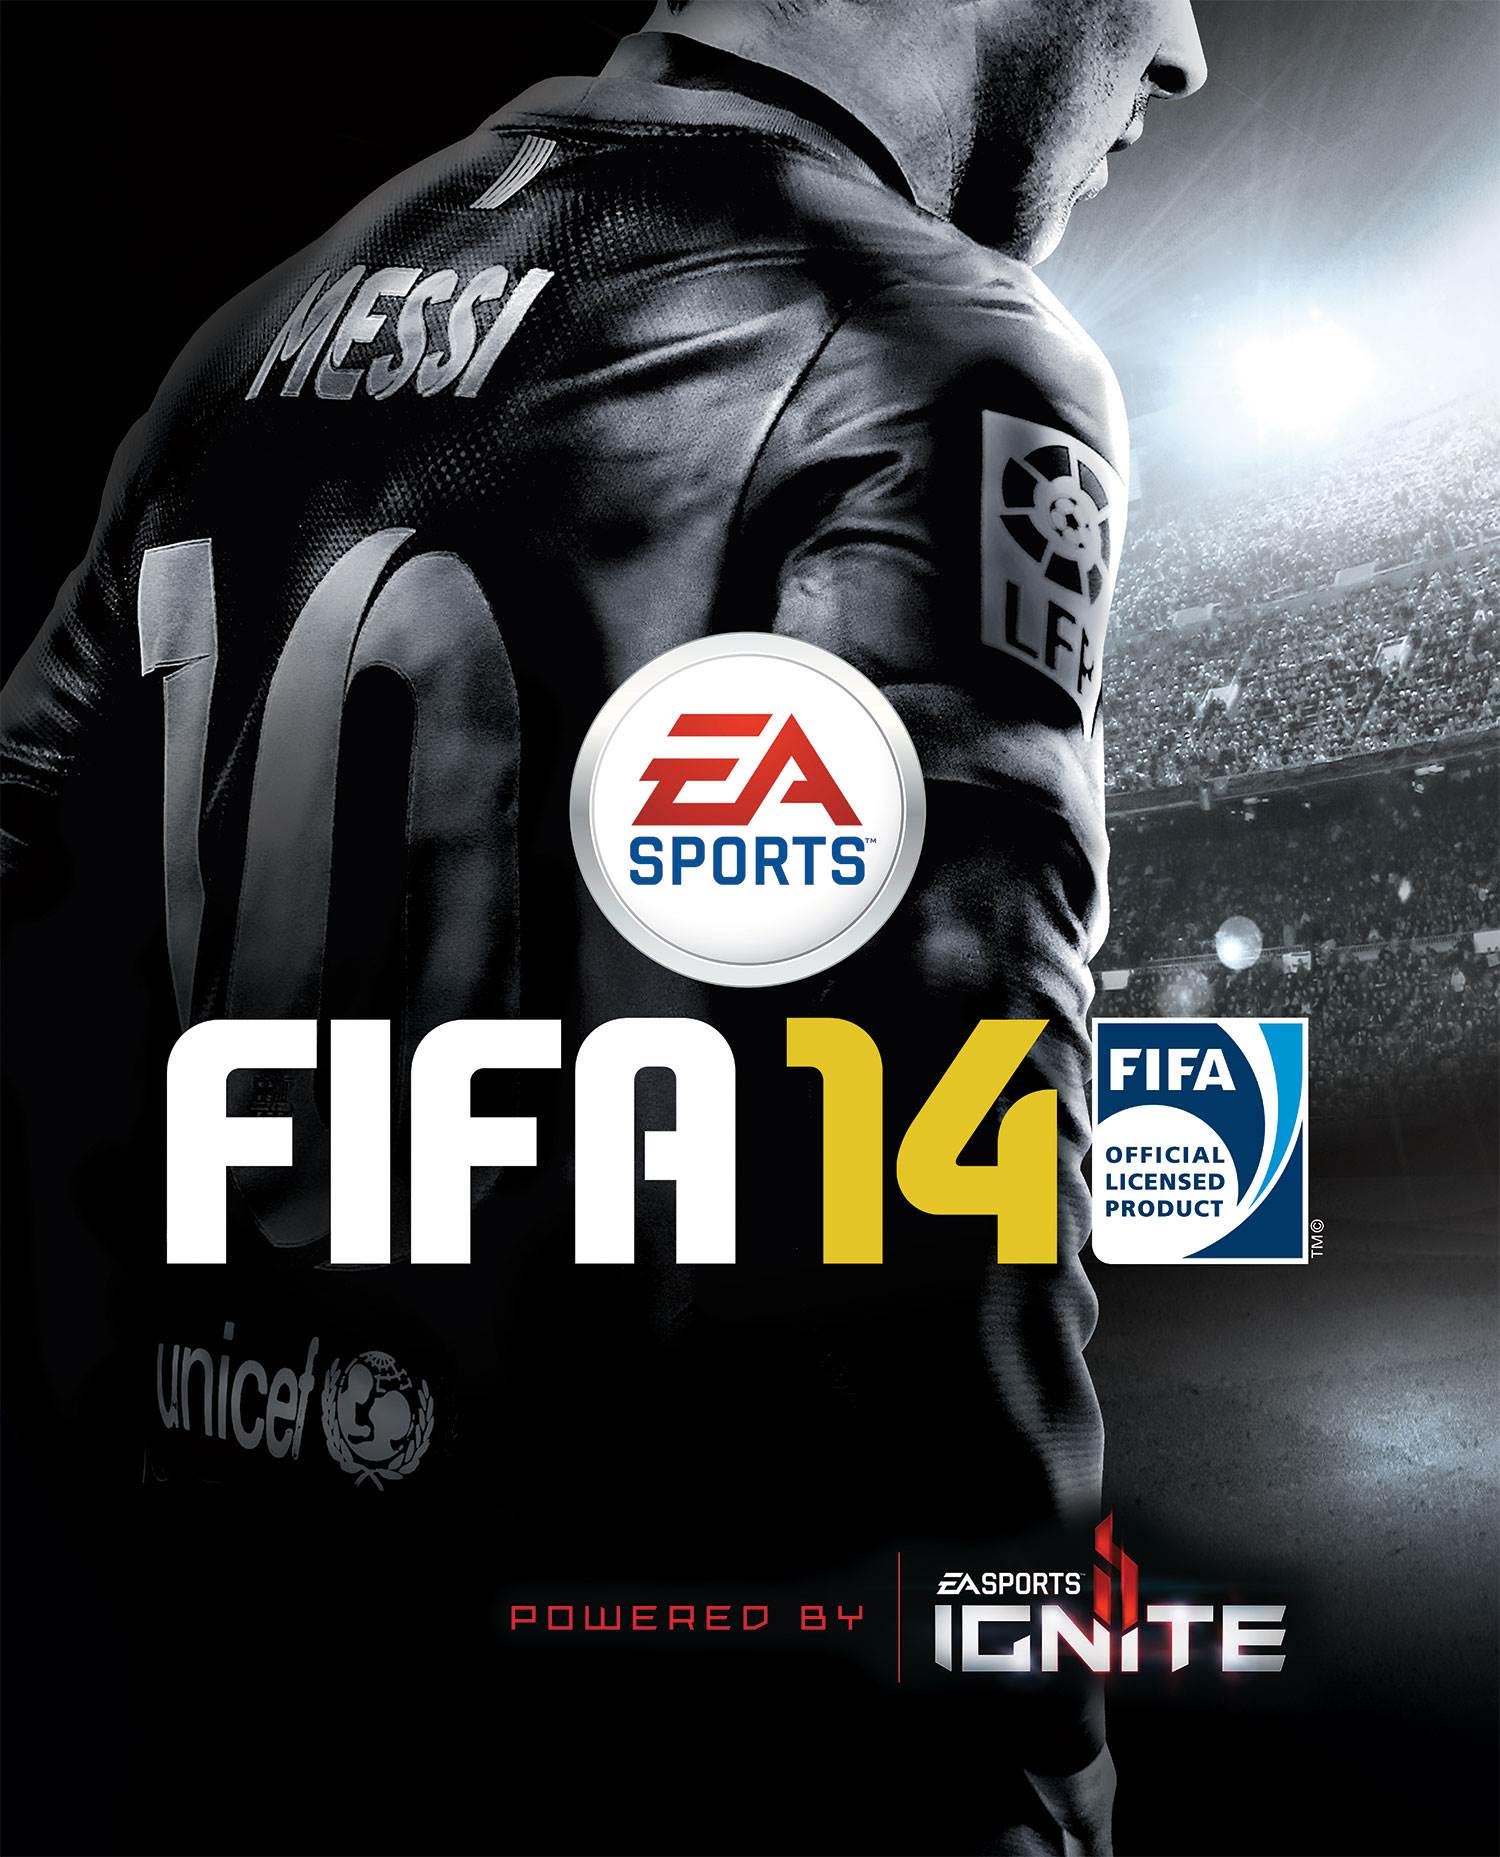 14 wallpapers official and high resolution fifa 14 images fifa 14 wallpapers official and high resolution fifa 14 images voltagebd Images